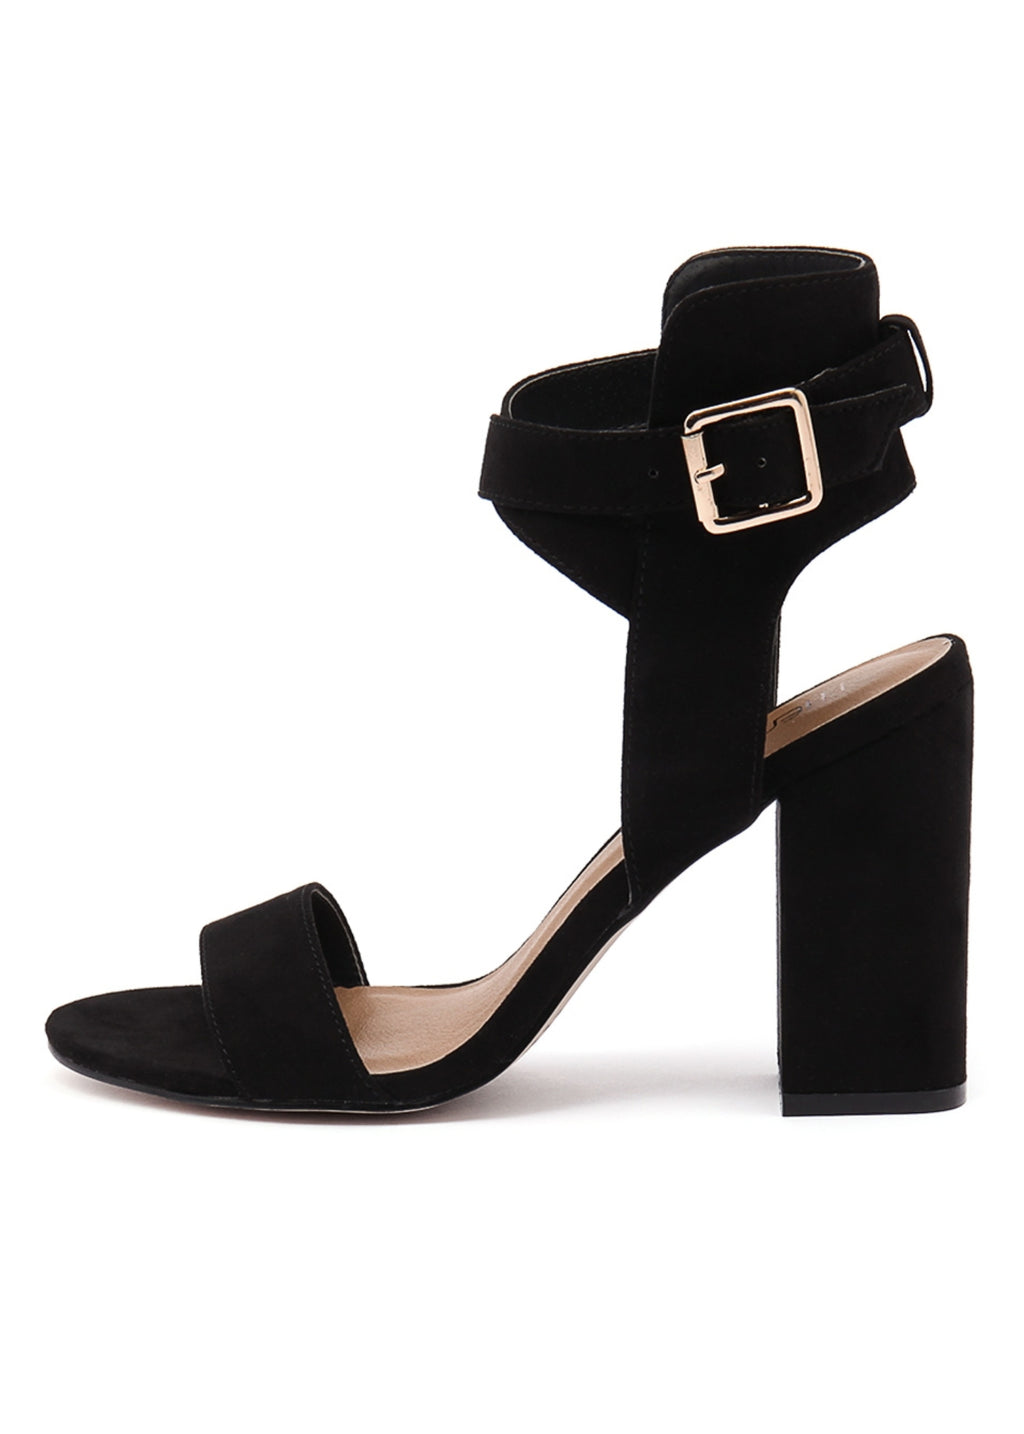 COLLINS HEEL Black Suede - By Therapy Shoes